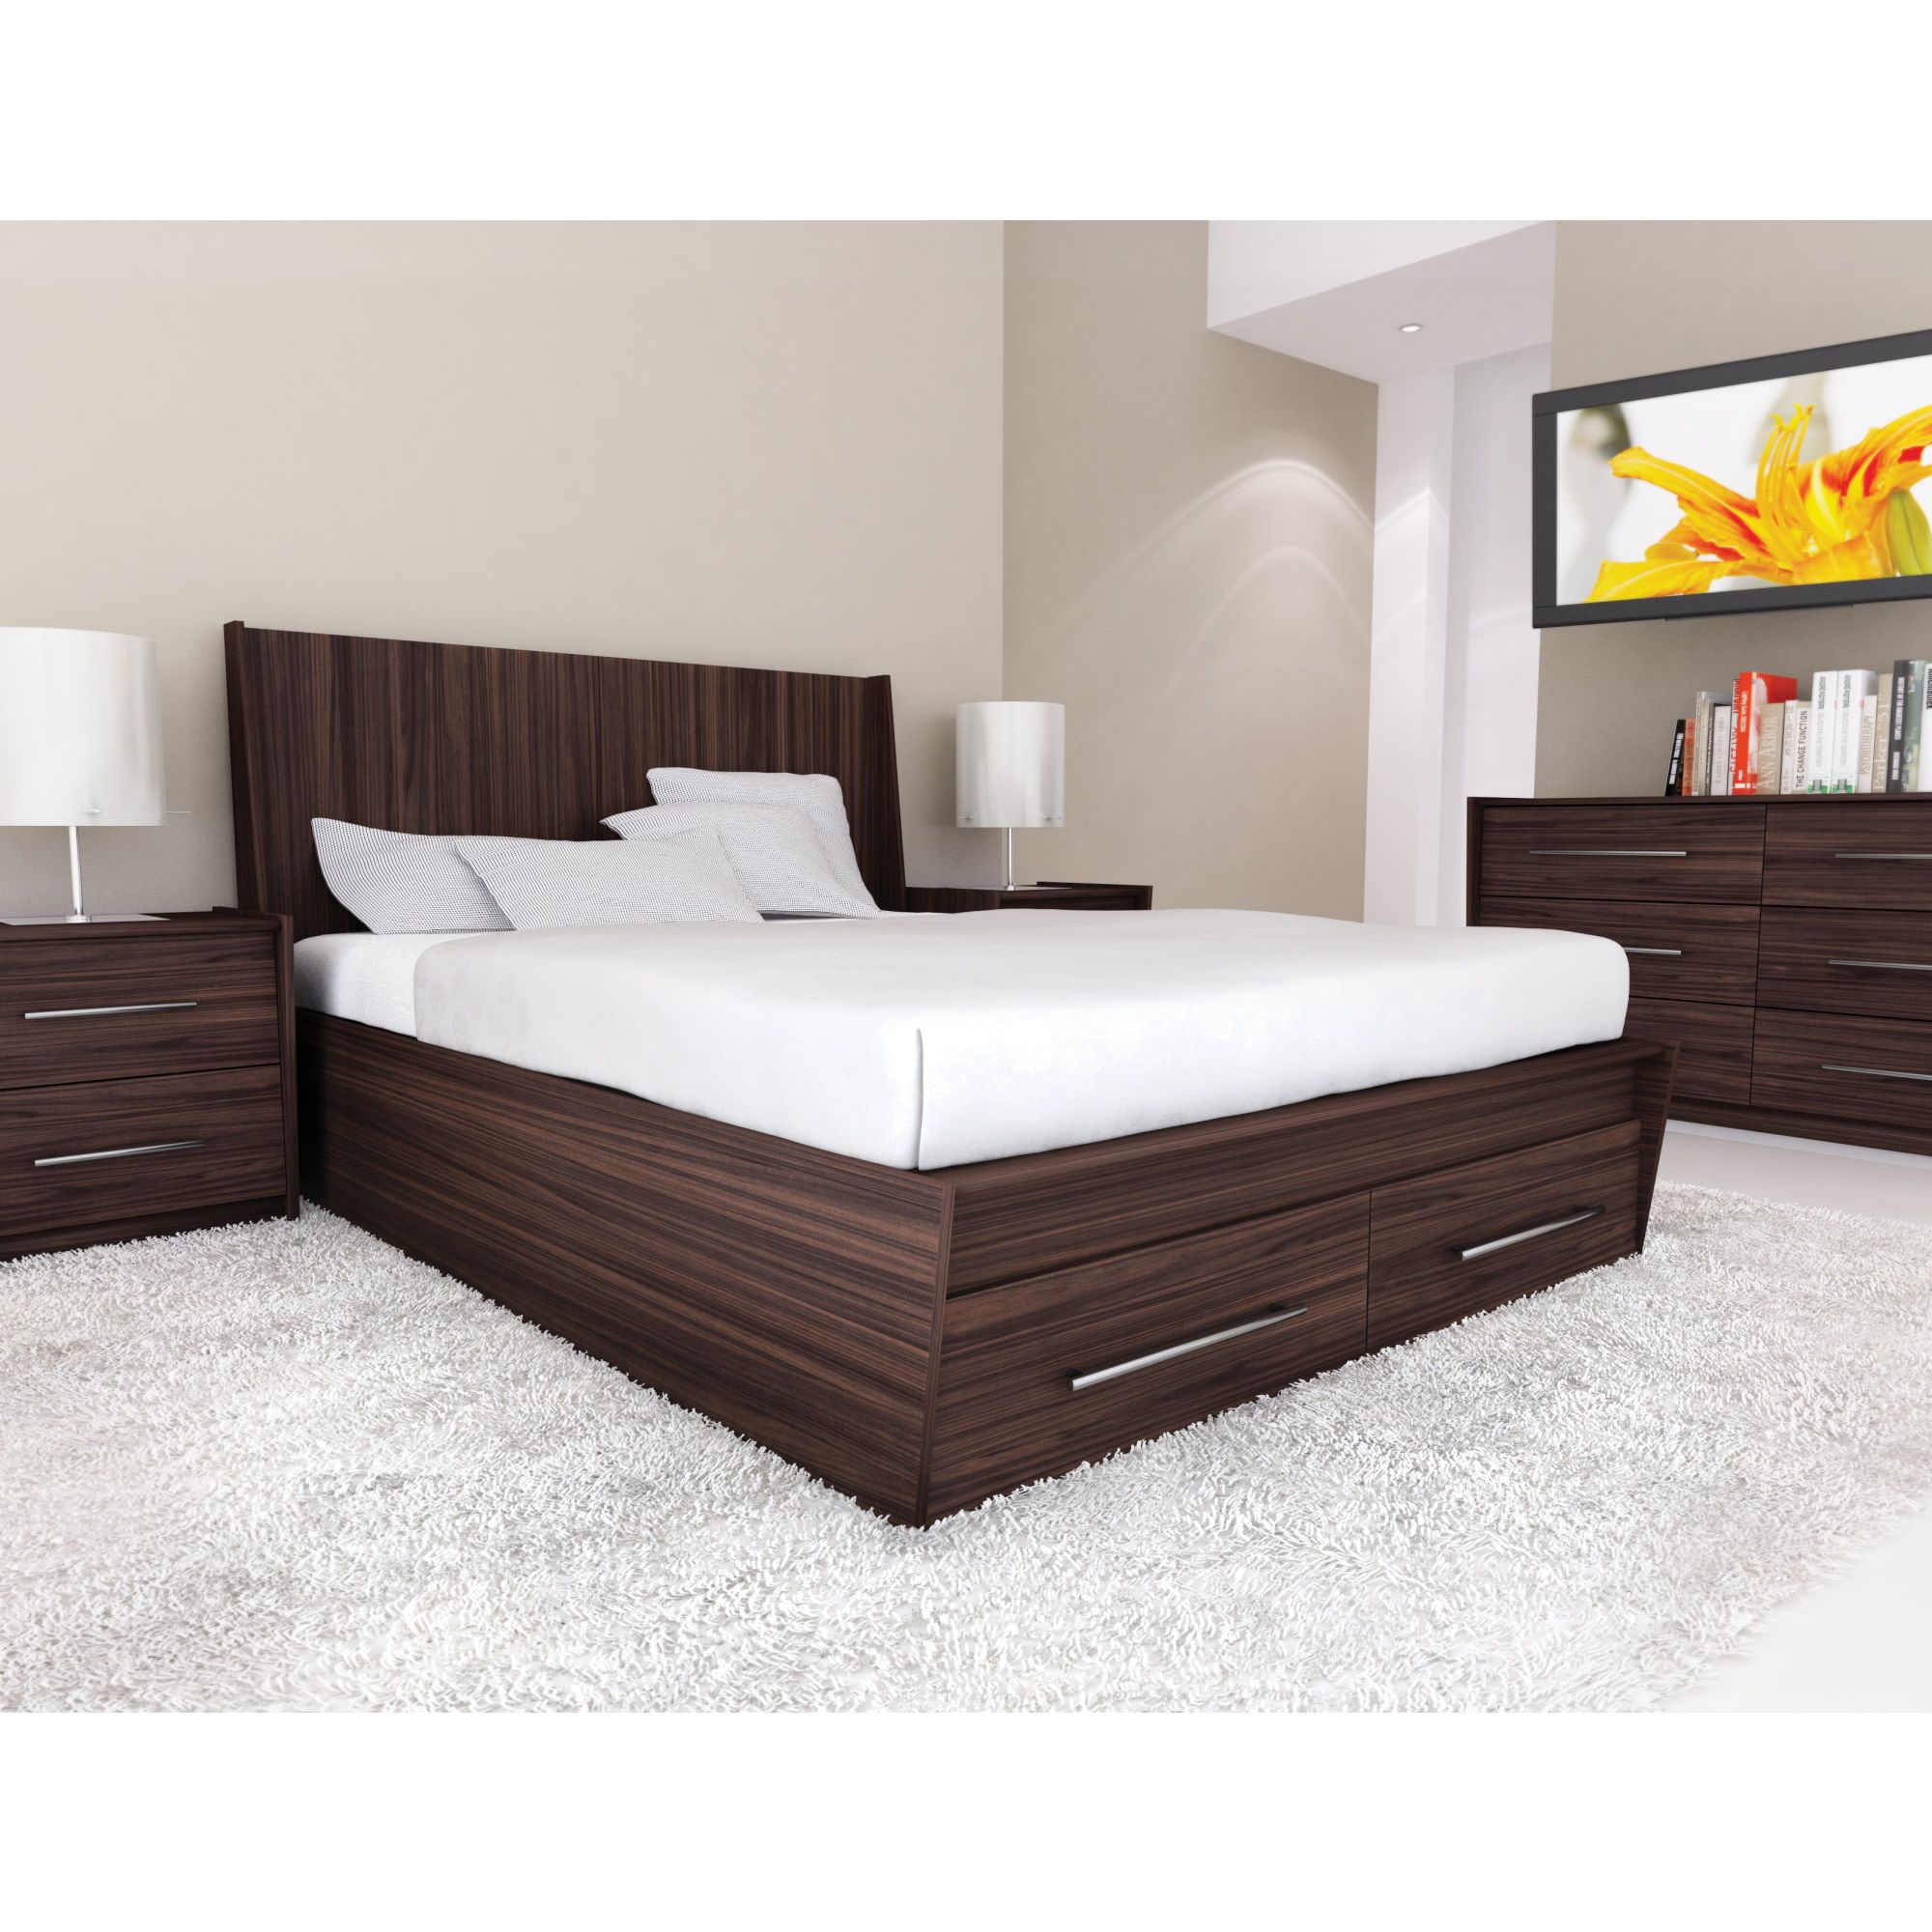 Double bed designs in wood -